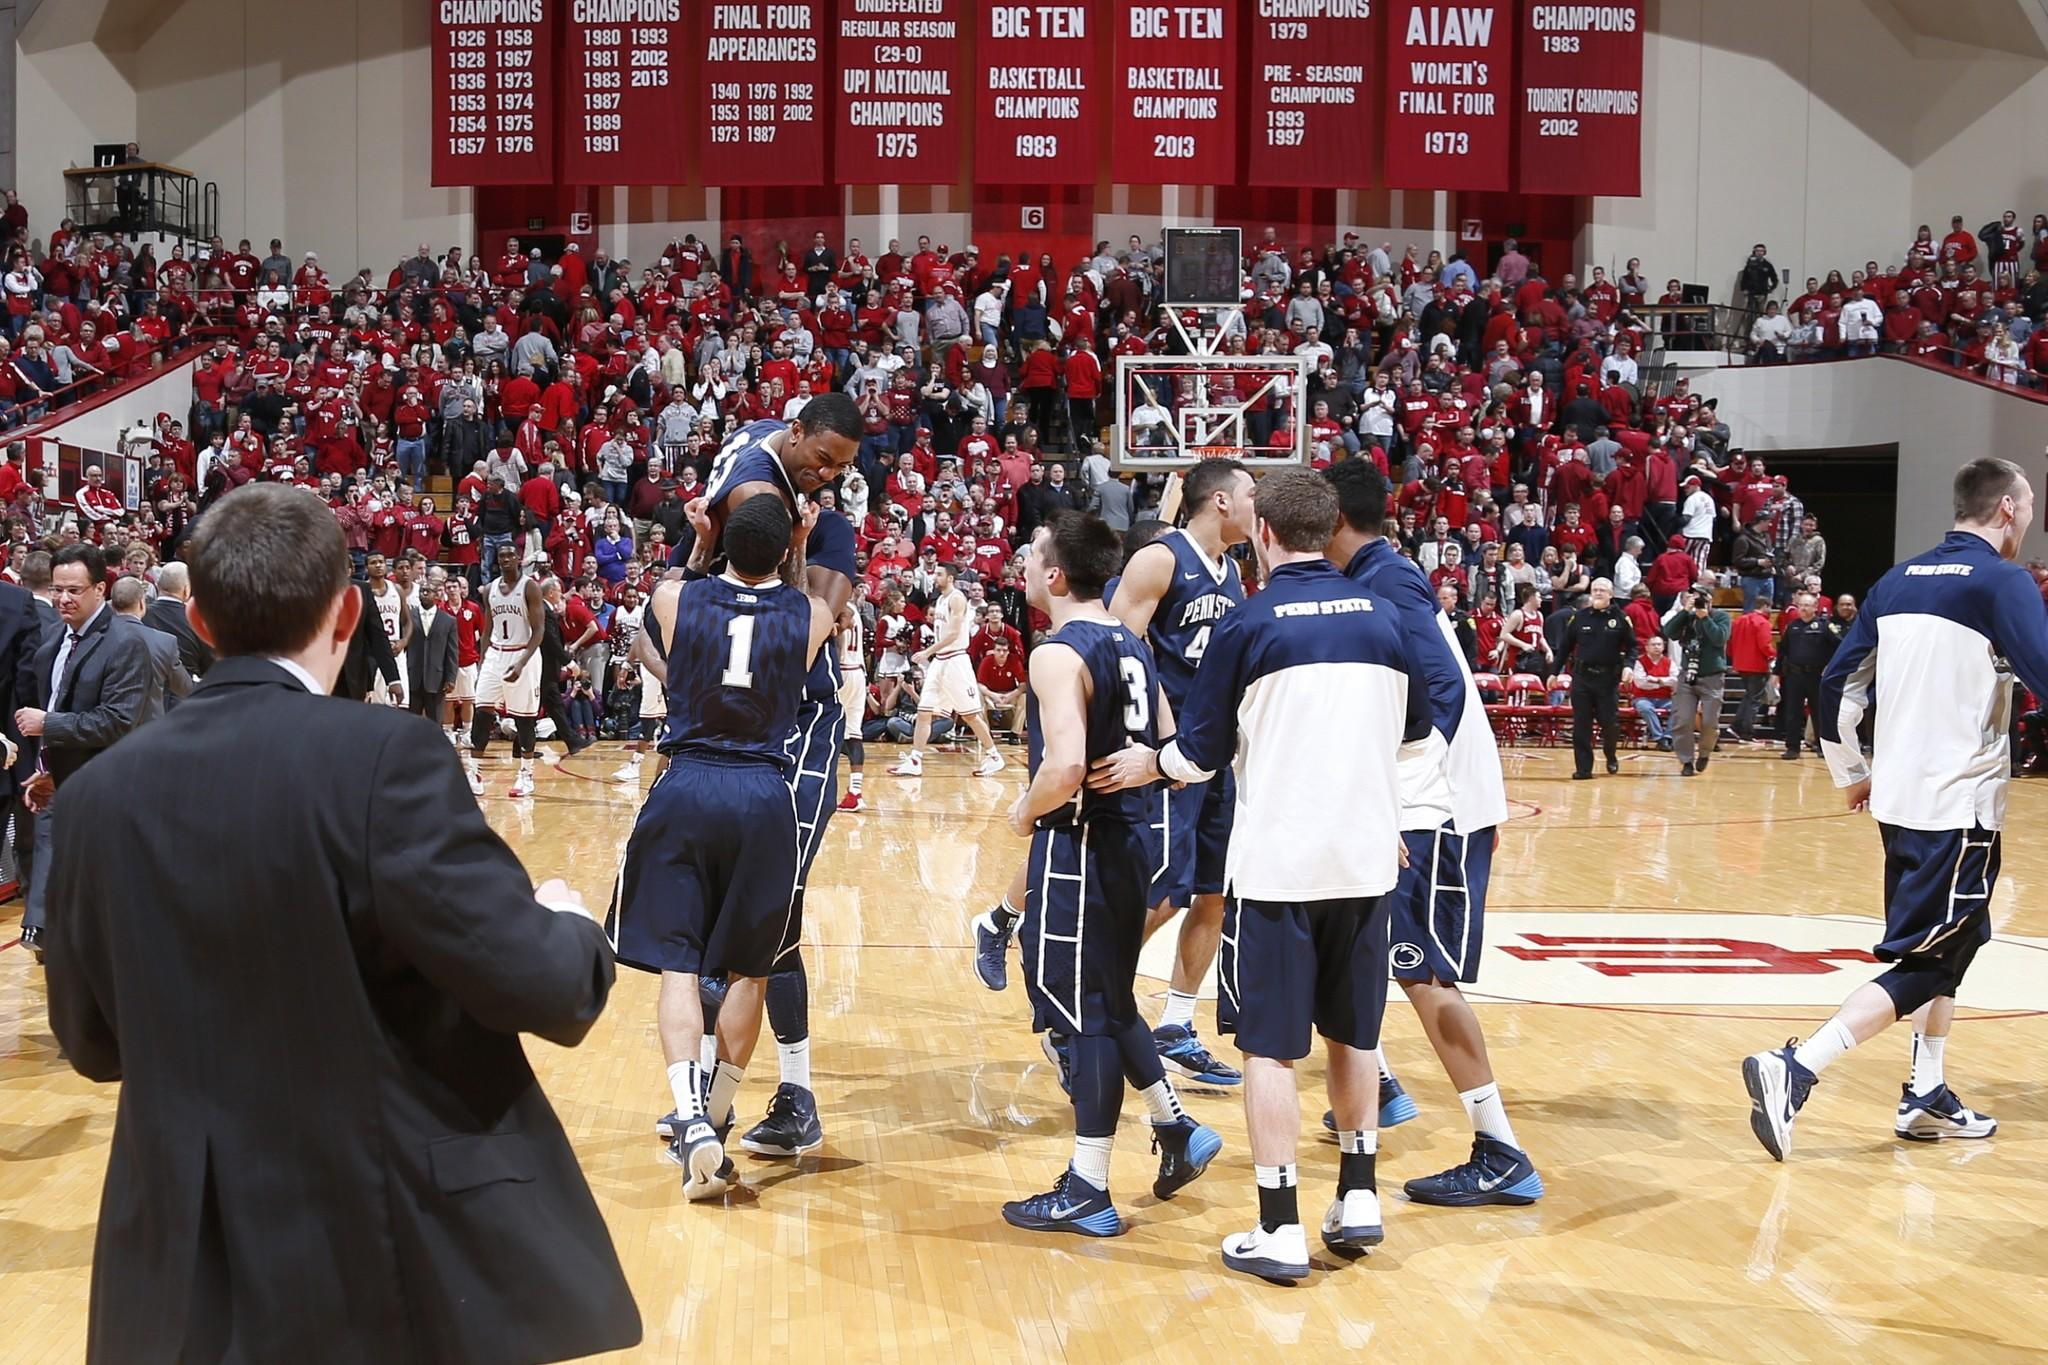 Penn State players celebrate after the win over Indiana at Assembly Hall.